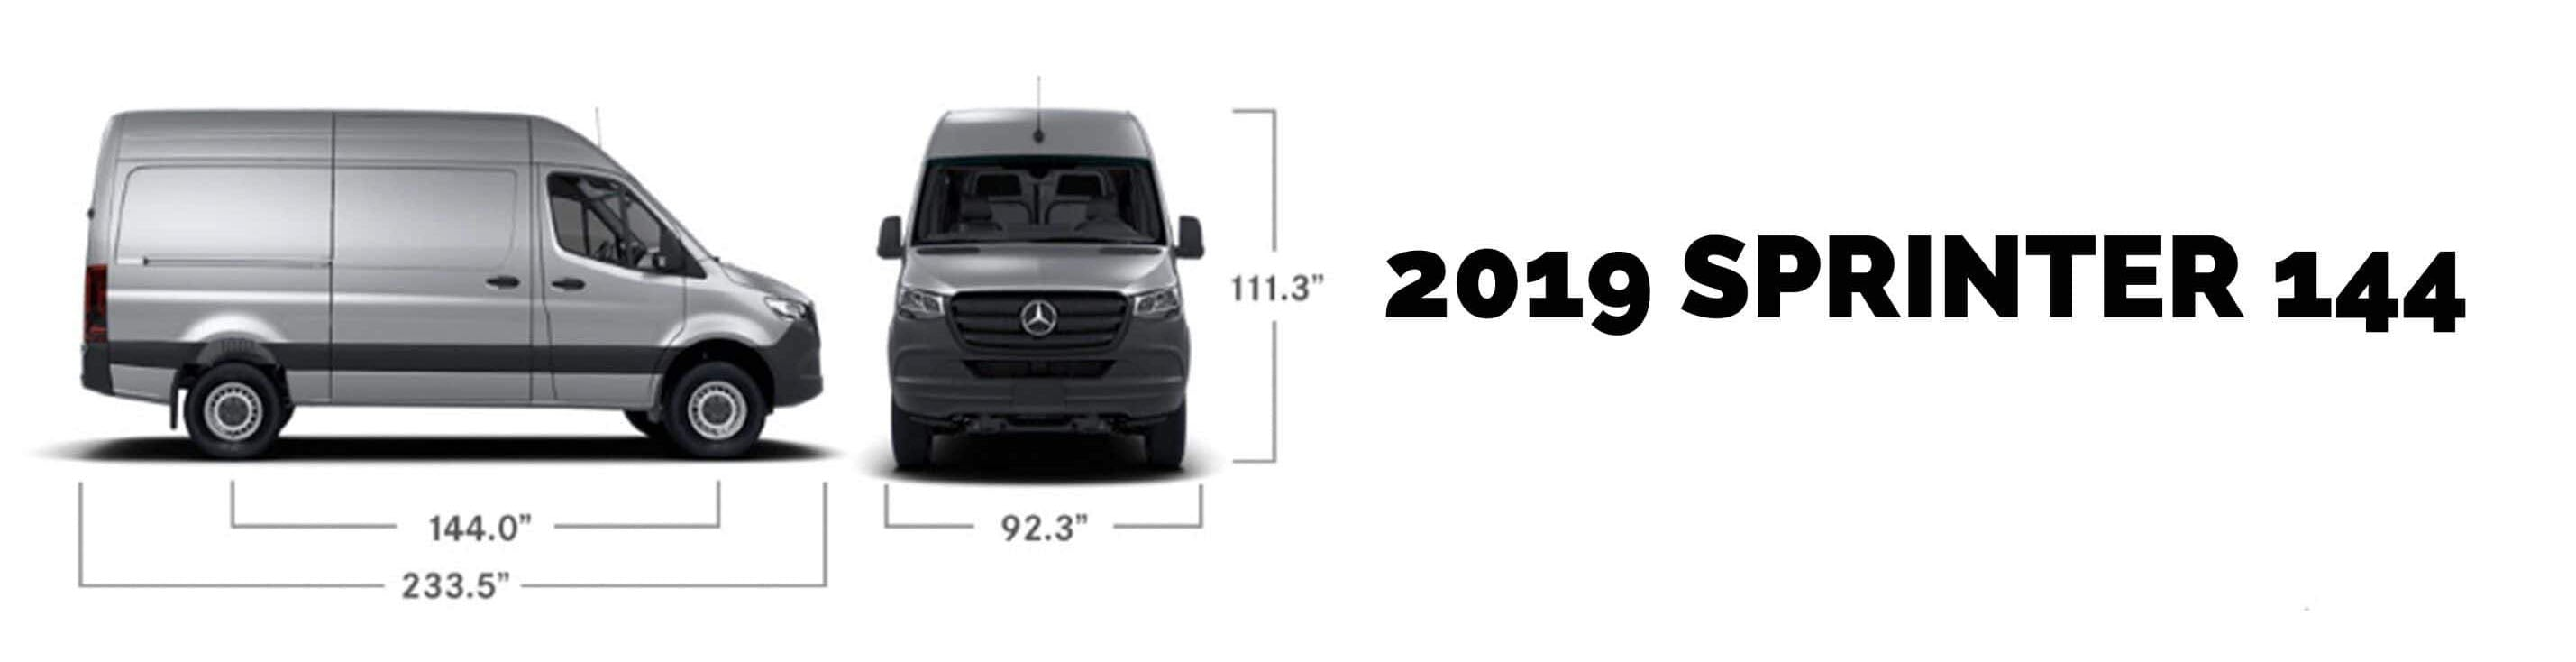 2019 Mercedes Benz Sprinter 144 Specs